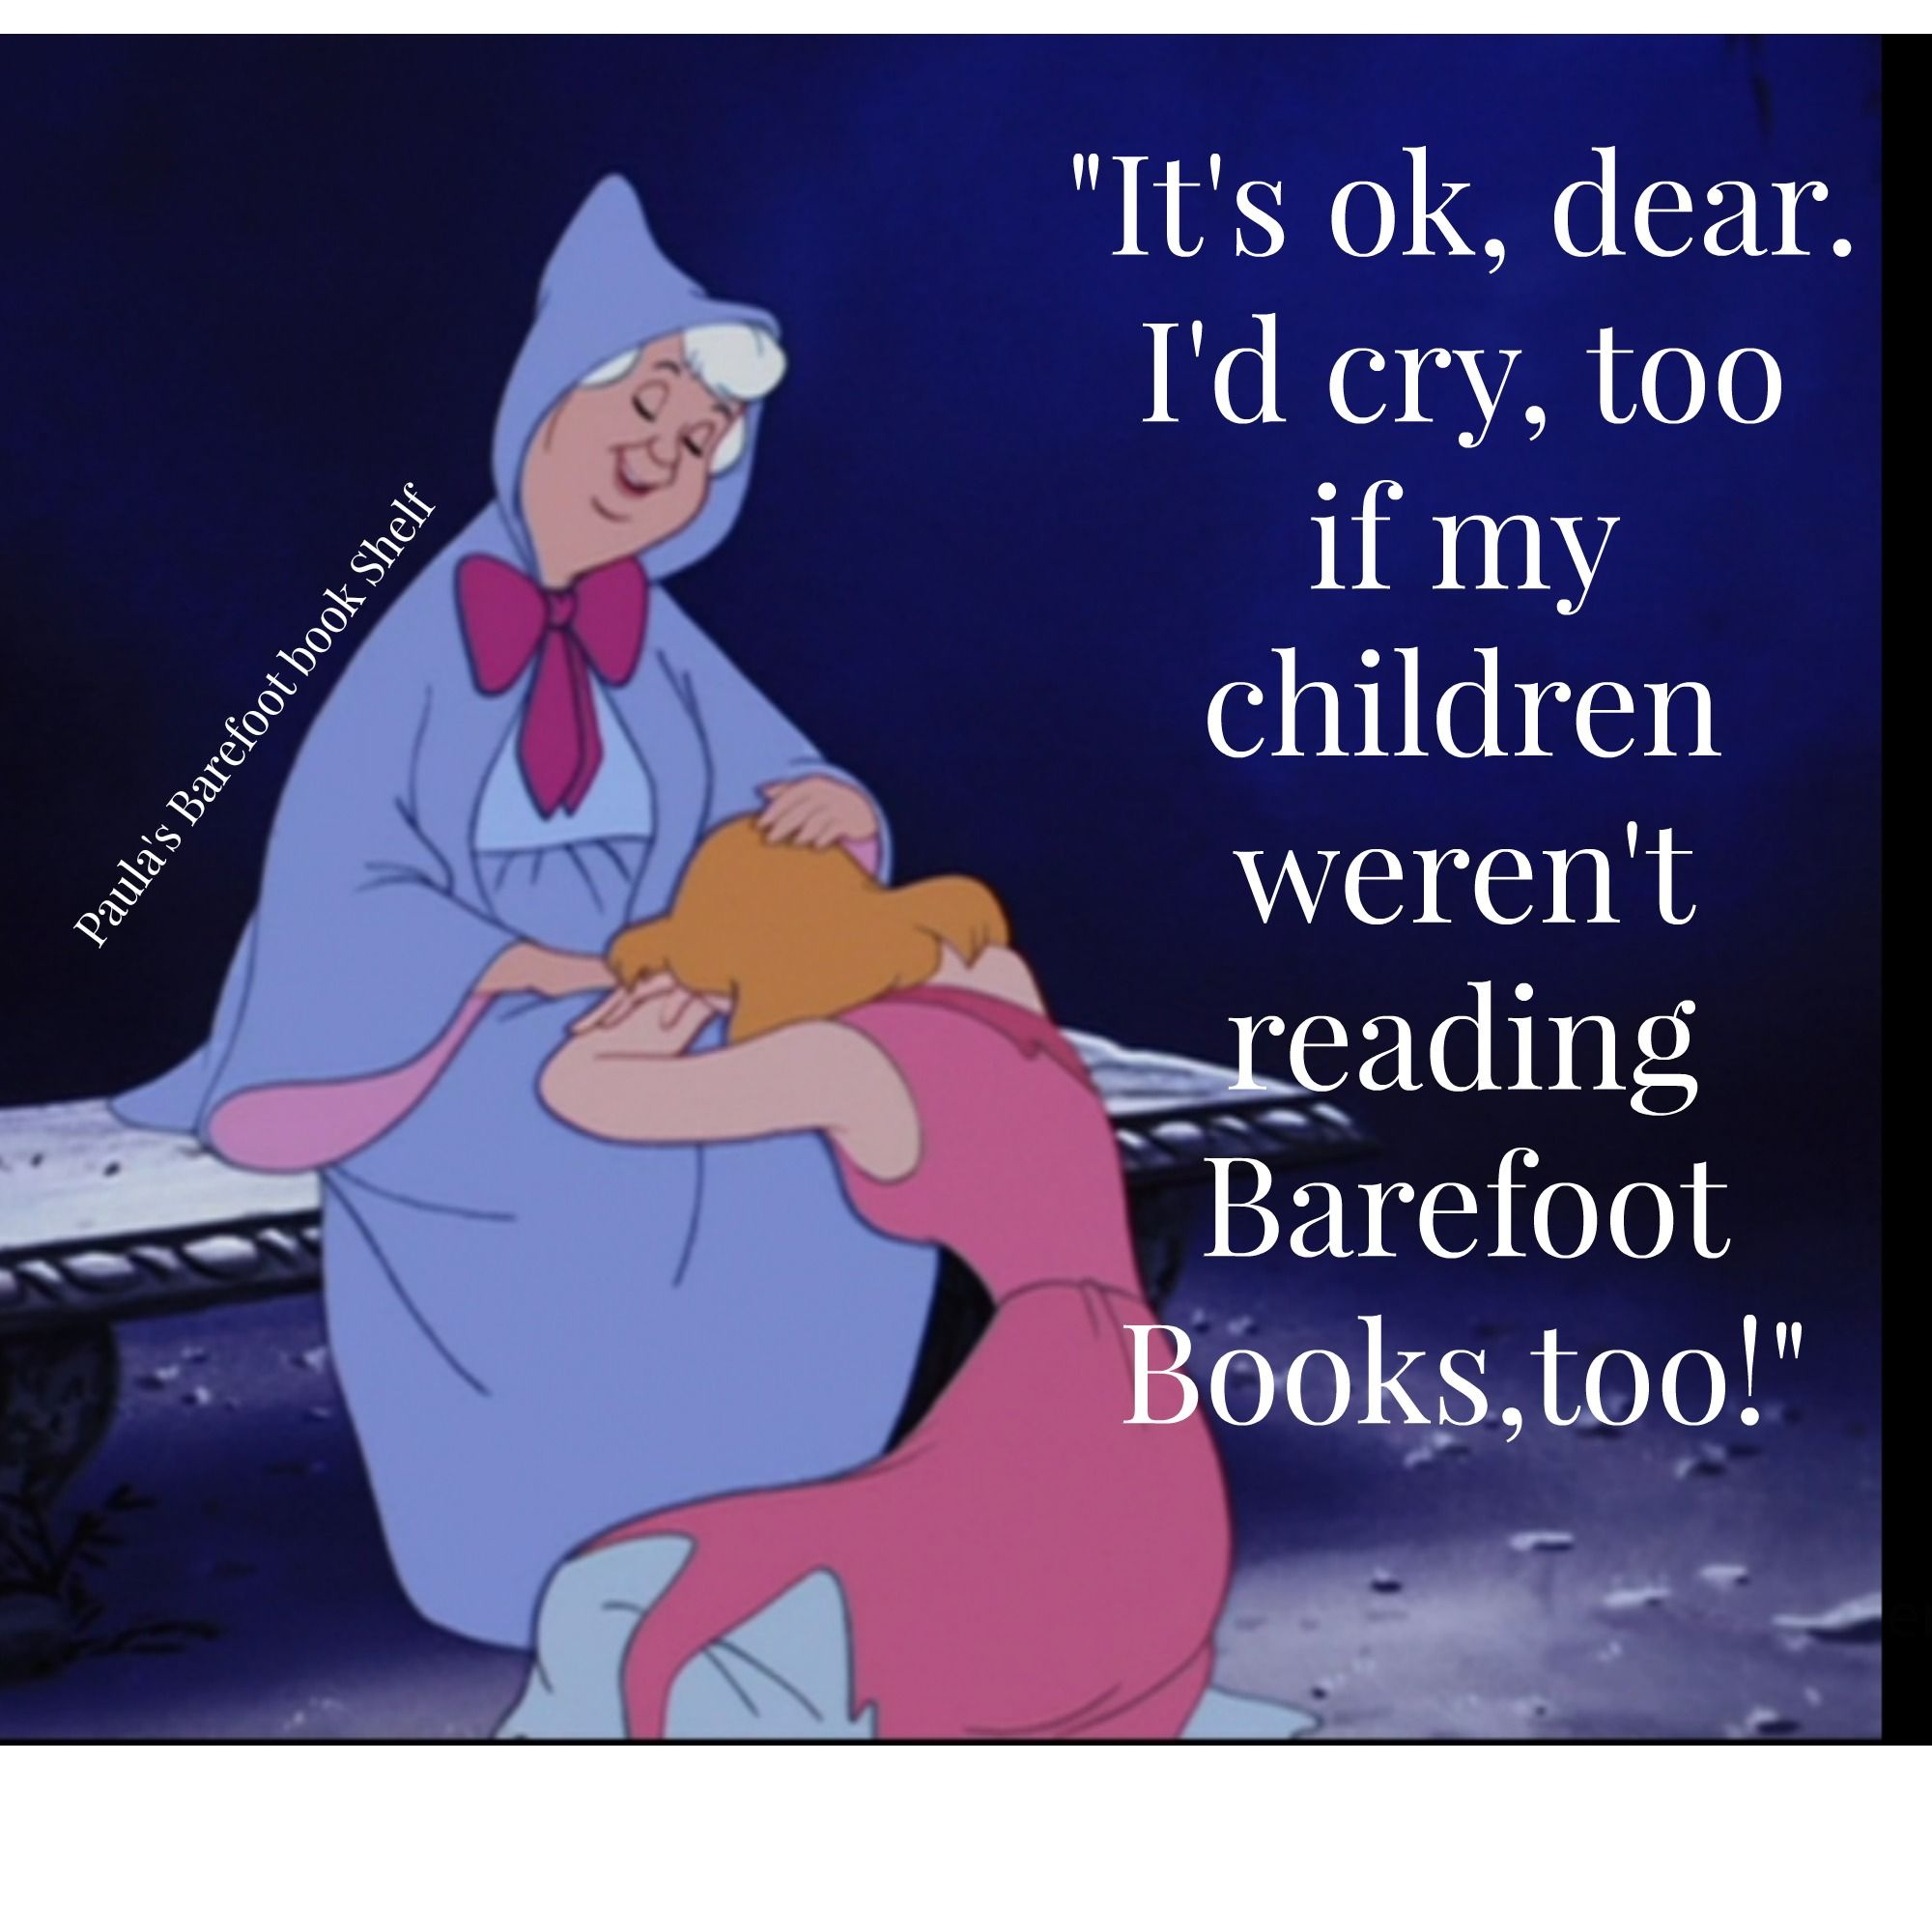 17++ Barefoot books animal boogie images